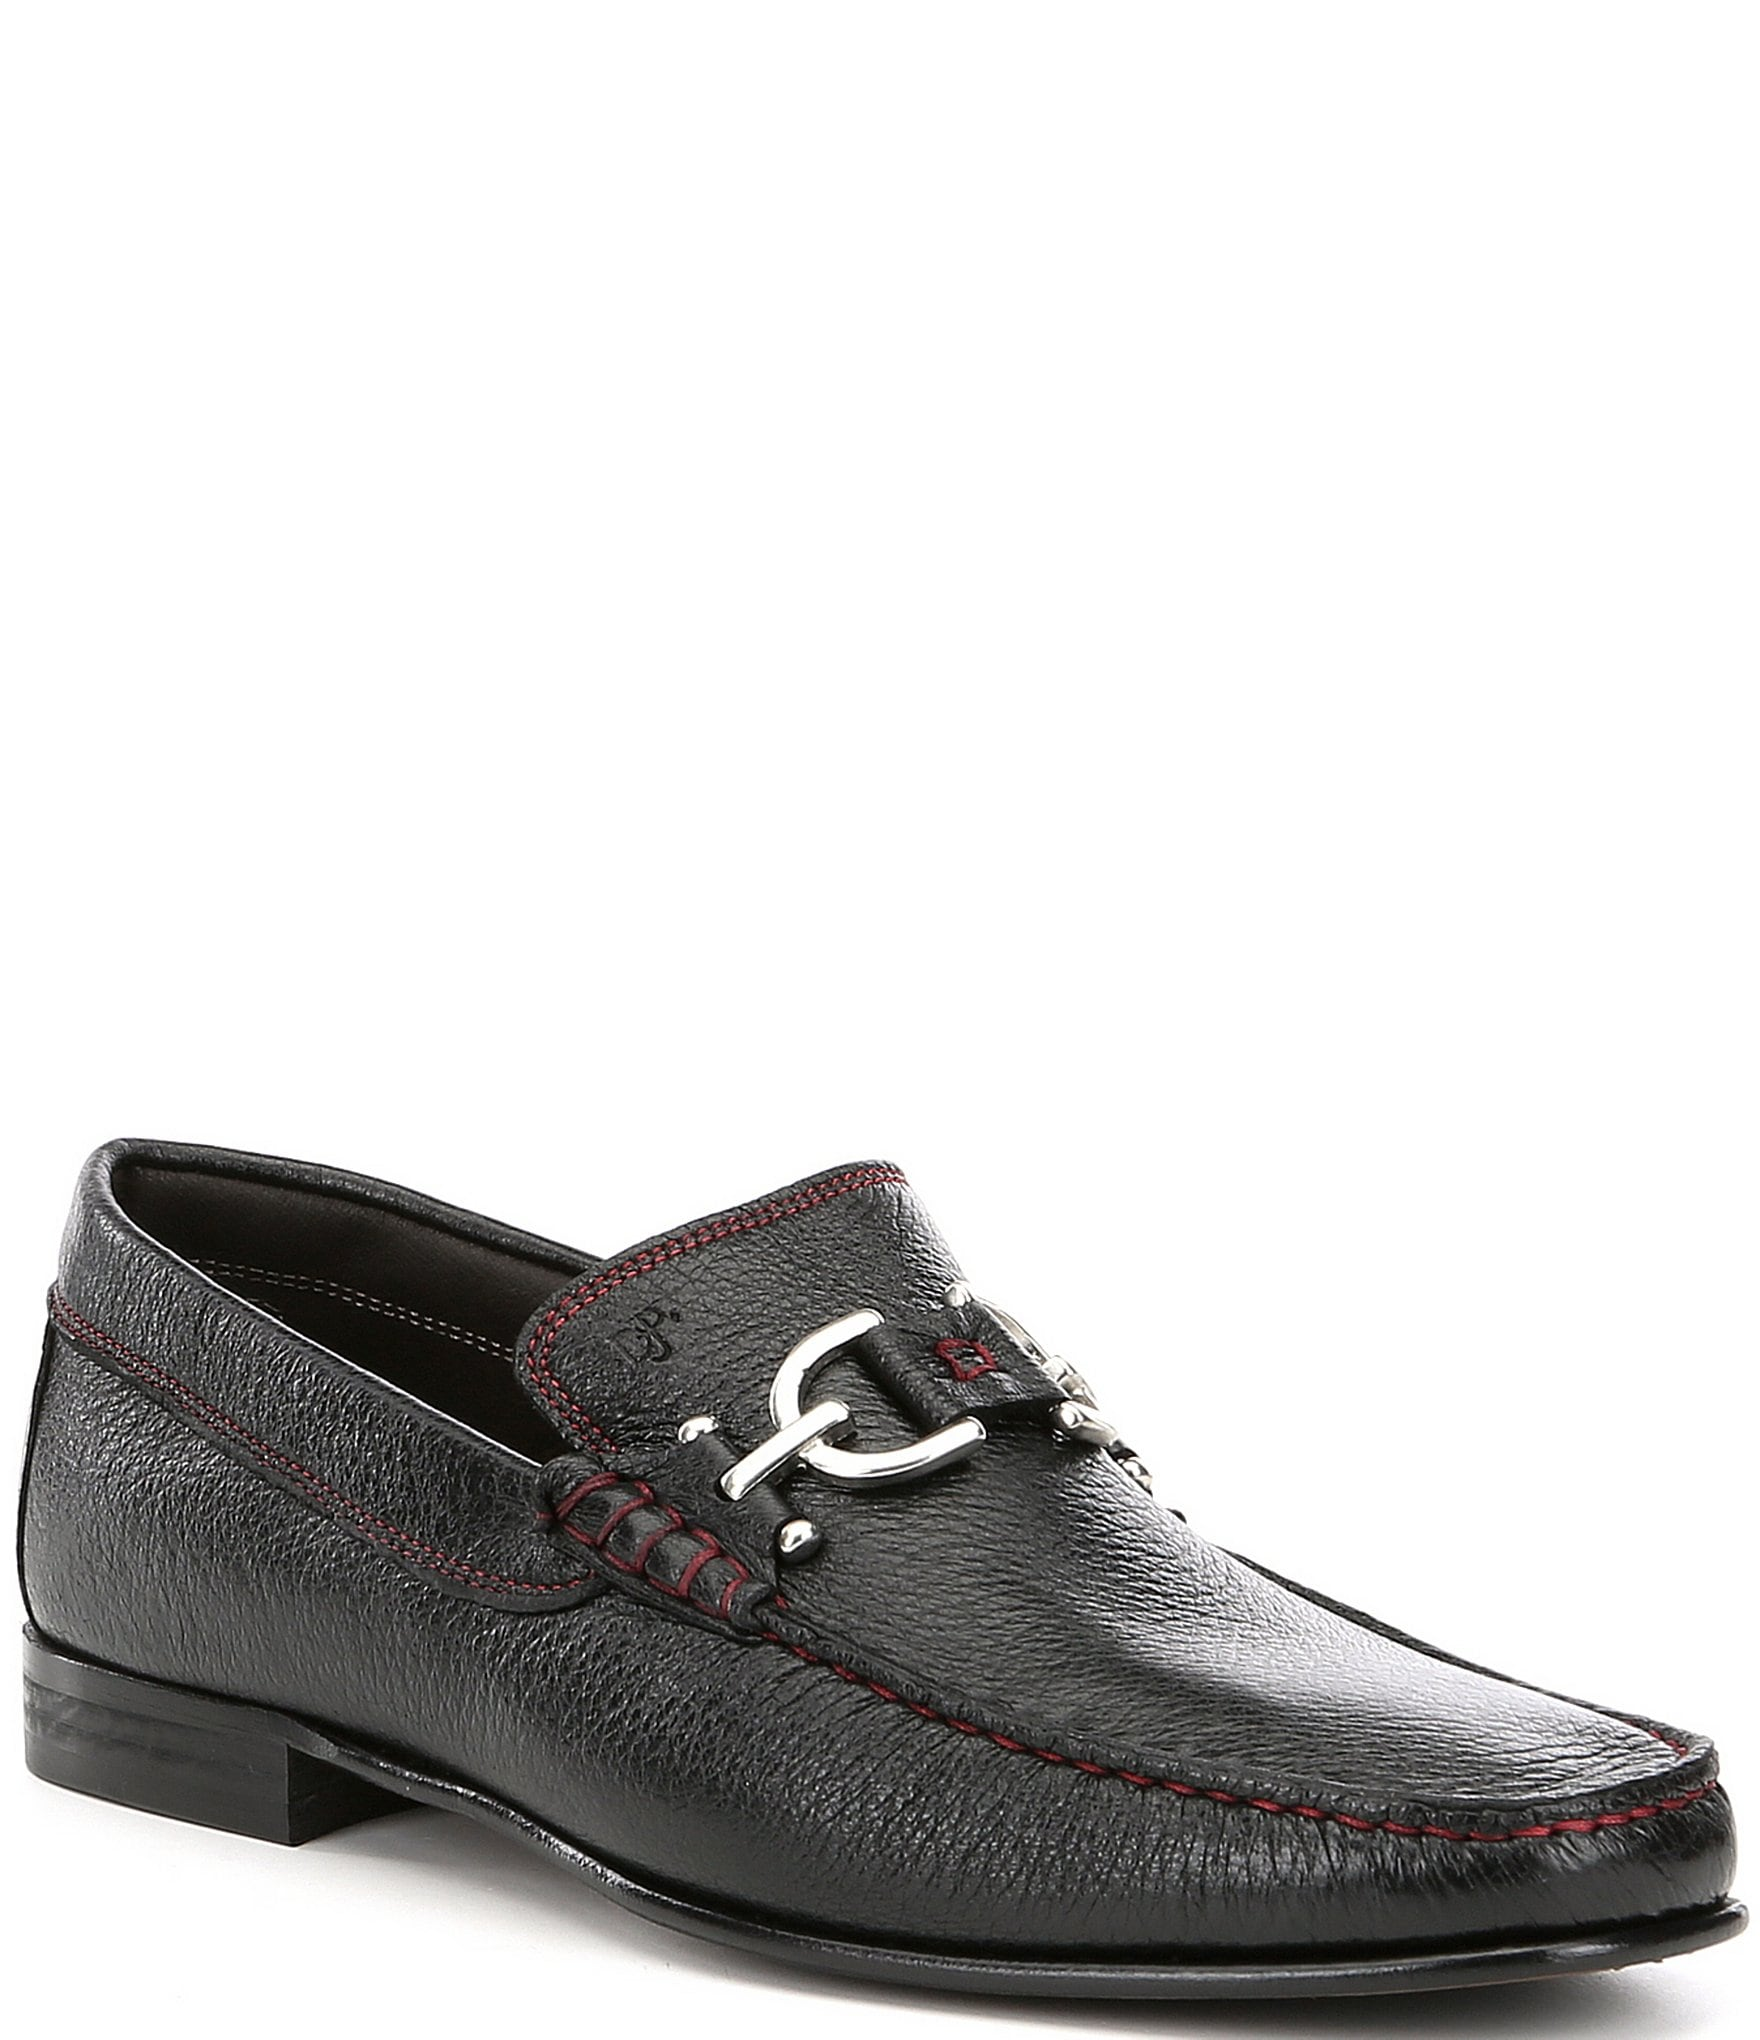 Donald J Pliner Mens Dacio2 Slip On Loafer